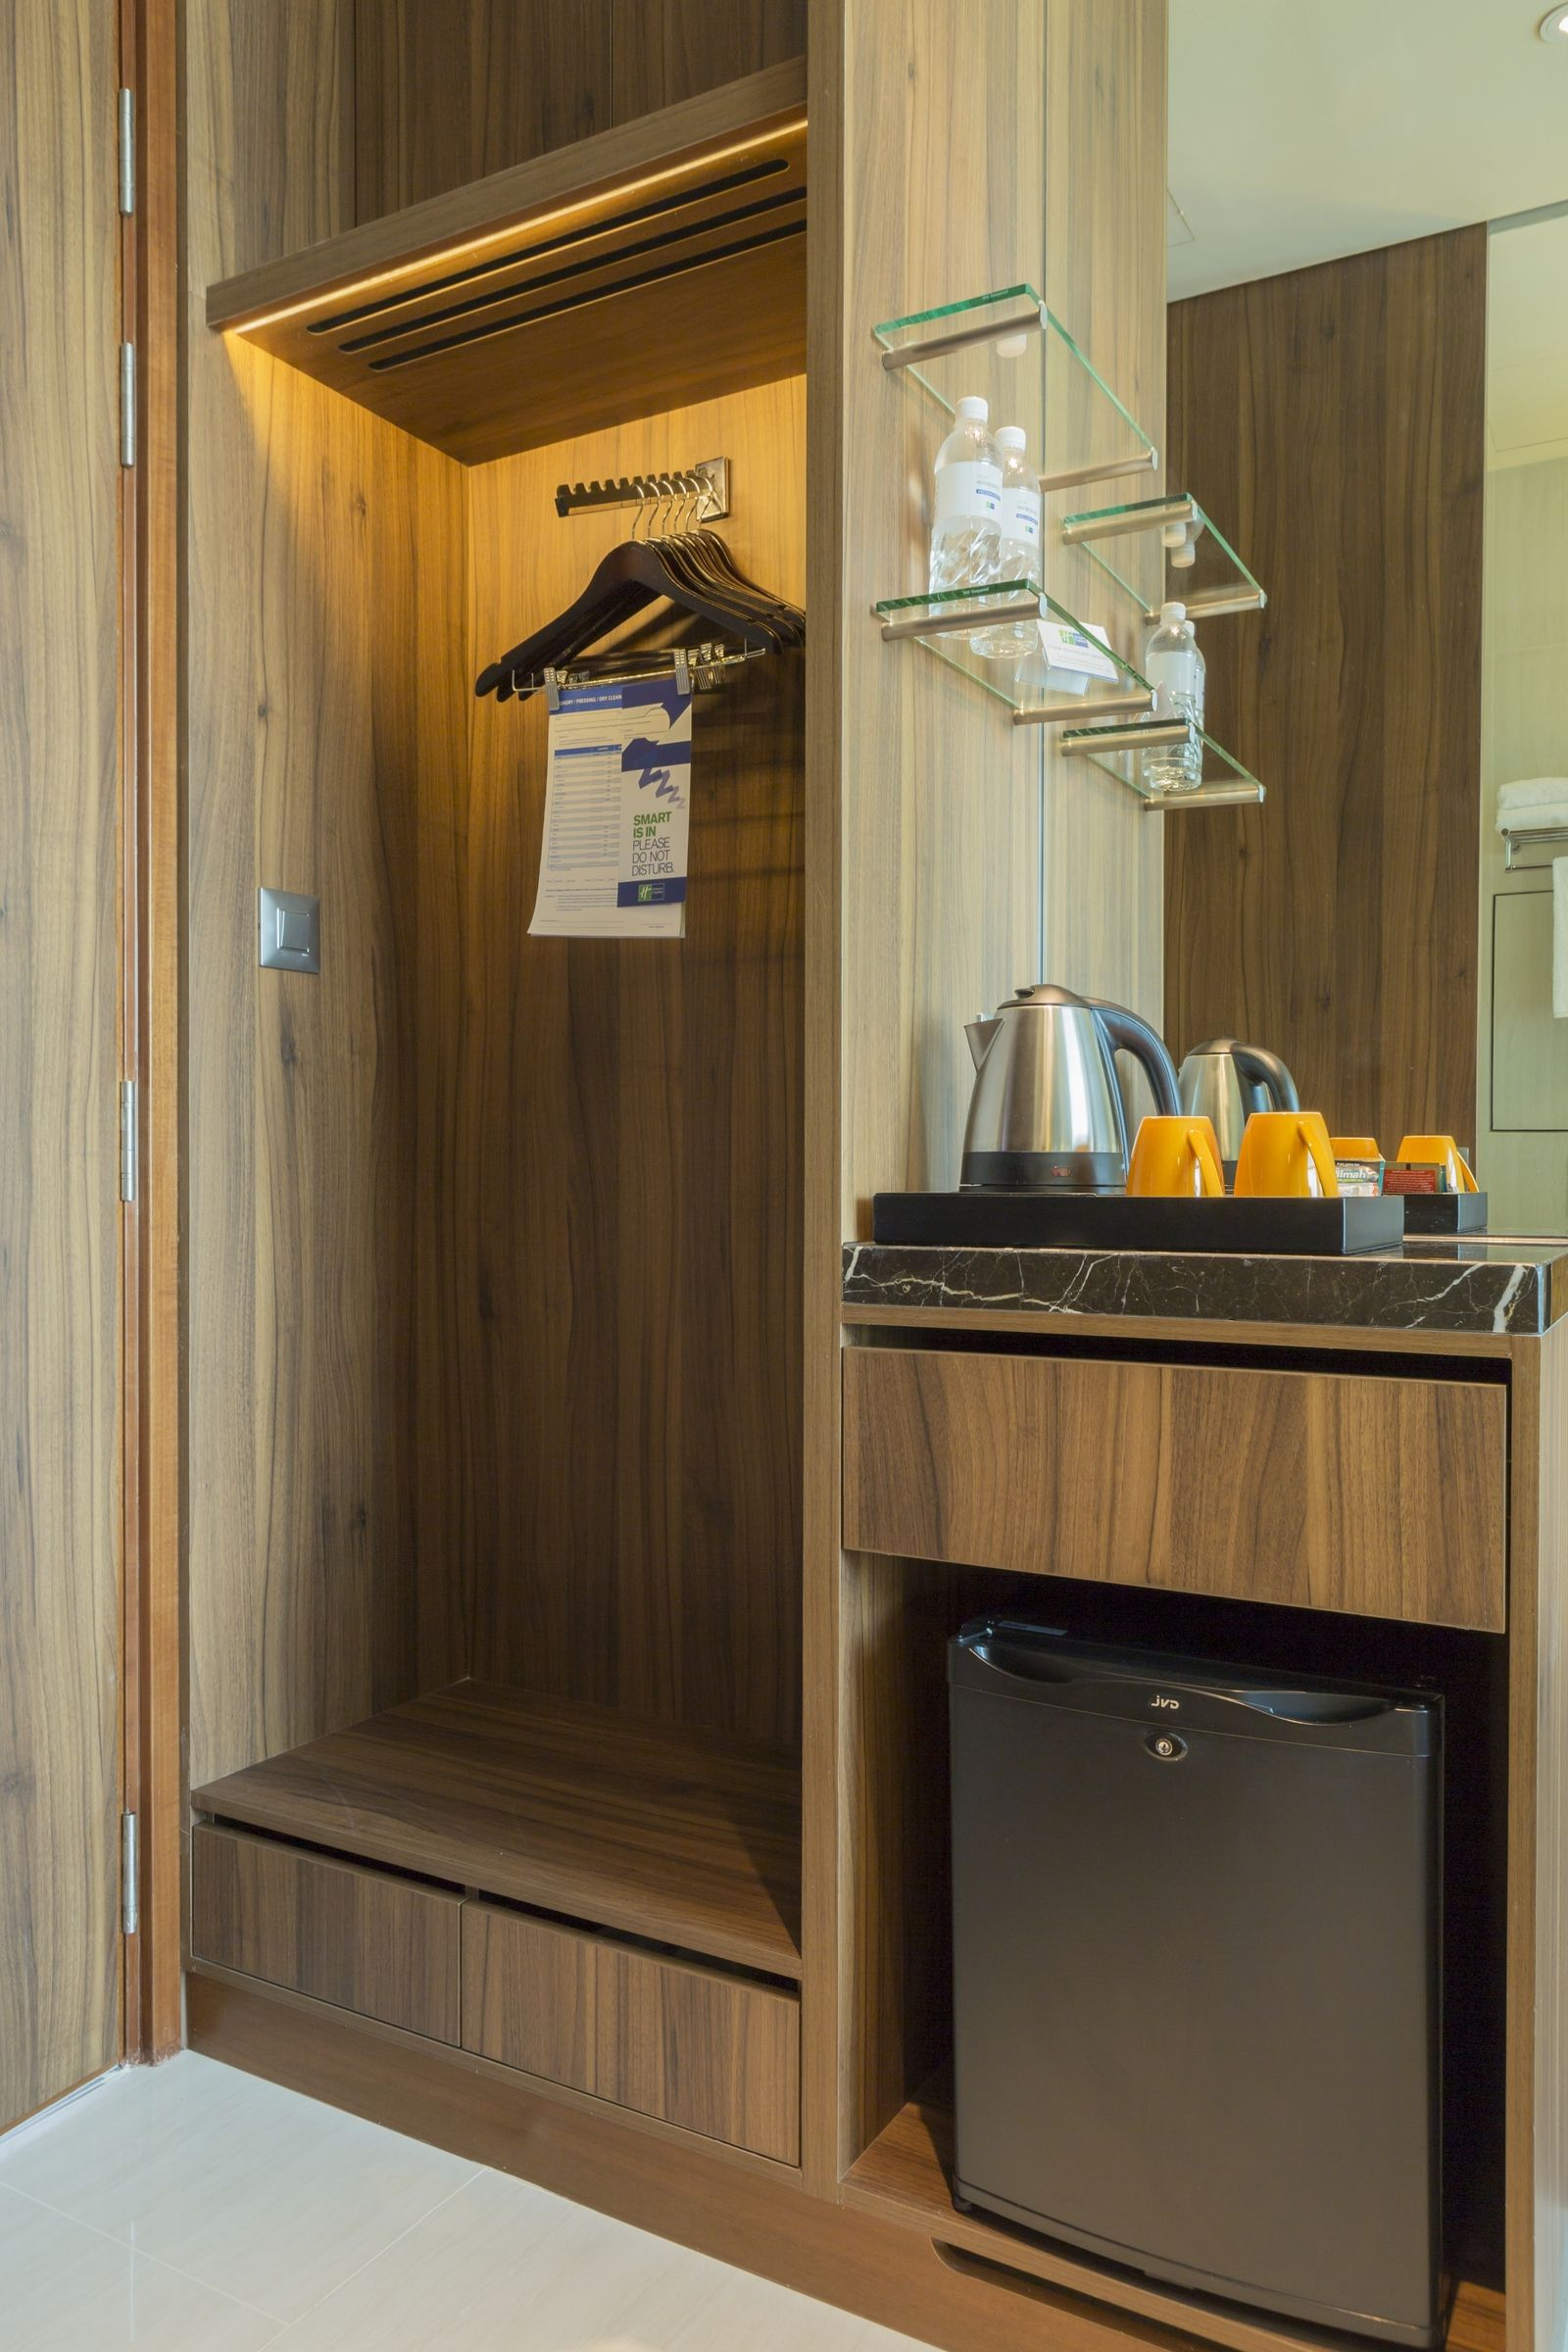 In Room Closet And Mini Fridge At Holiday Inn Express Singapore